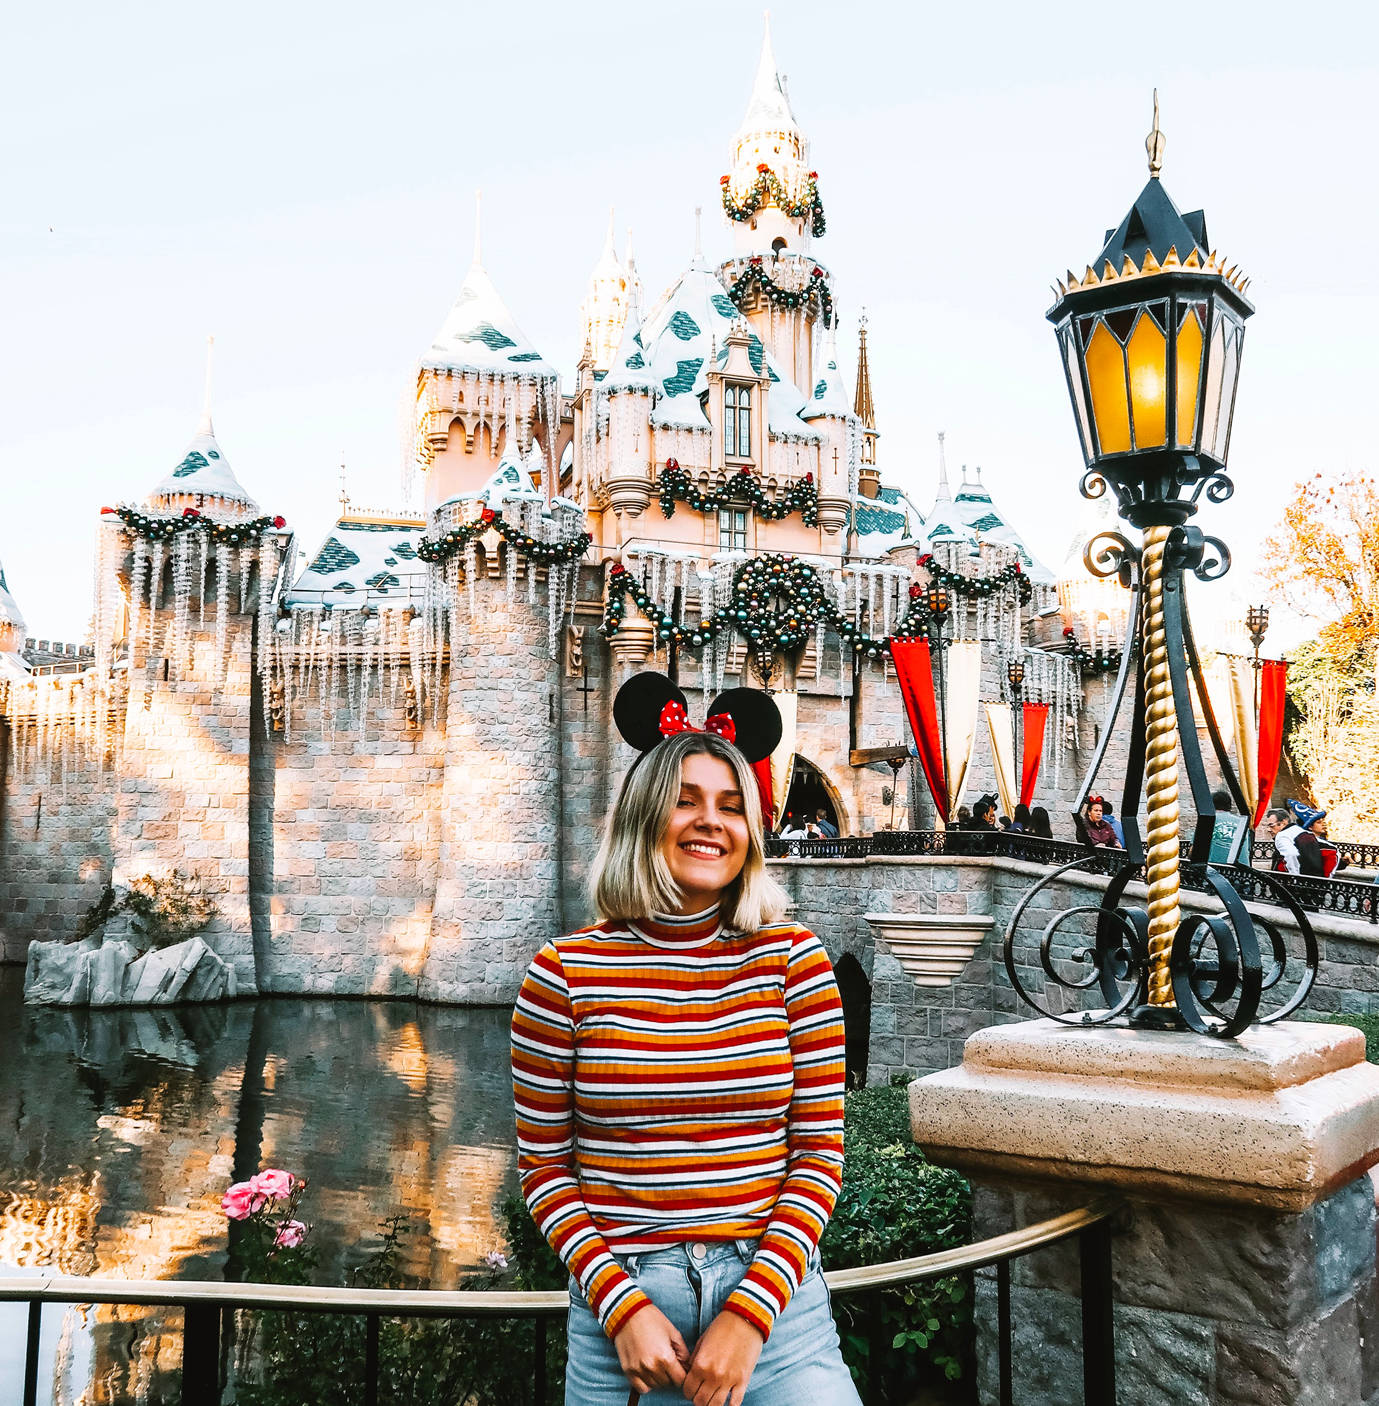 Hacks & Tips For The Best Day Ever At Disneyland - Travel